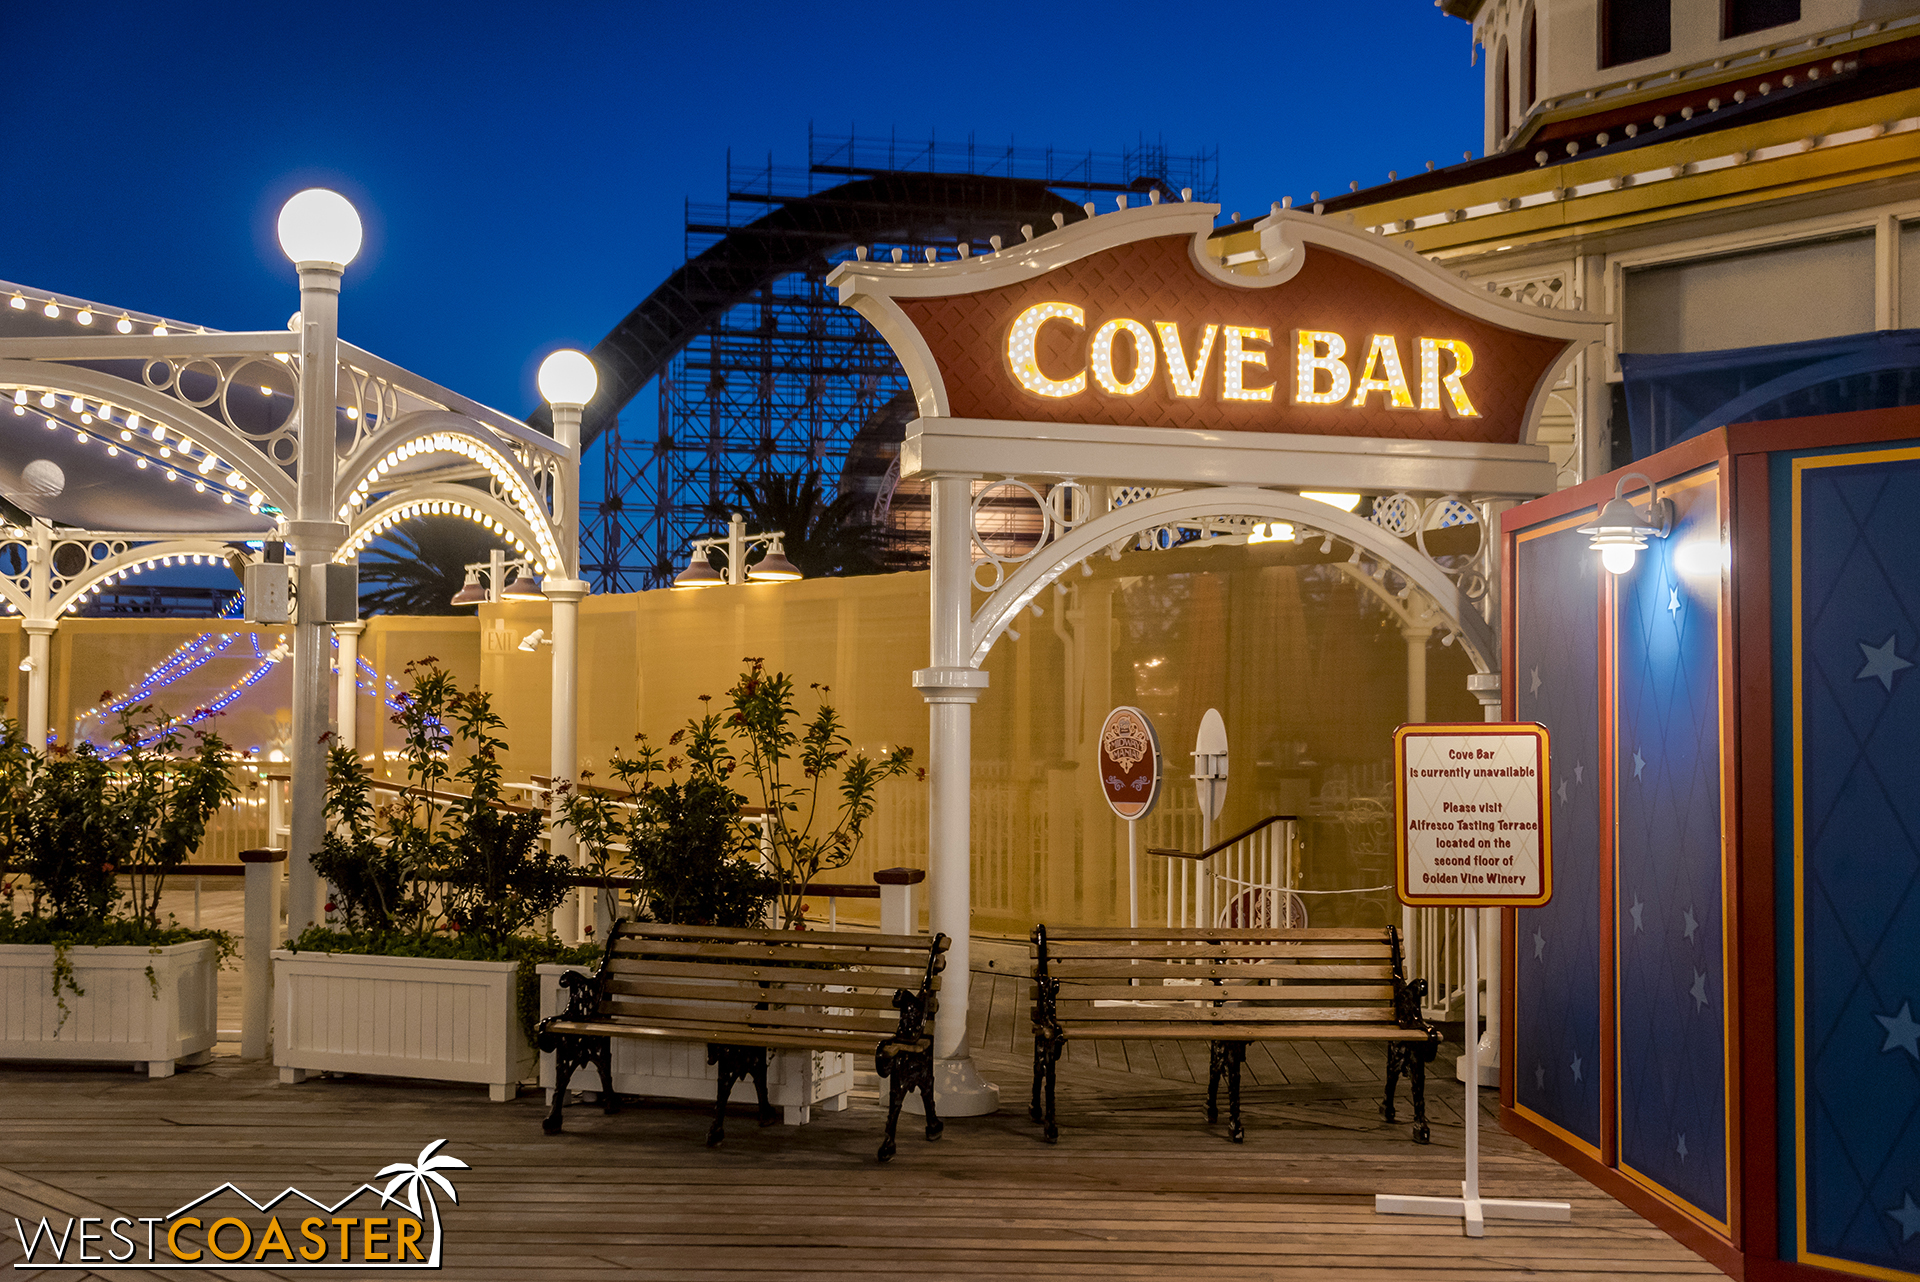 Cove Bar, to continue to be called Cove Bar?